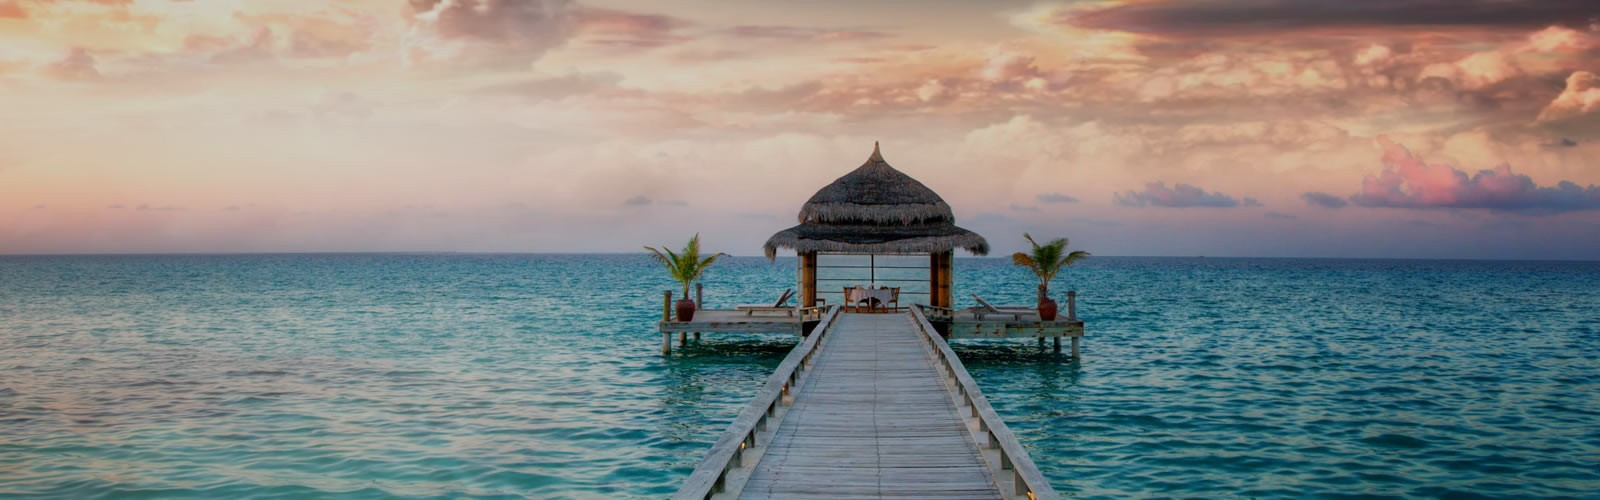 club-med-header-pure-destinations-partner-header